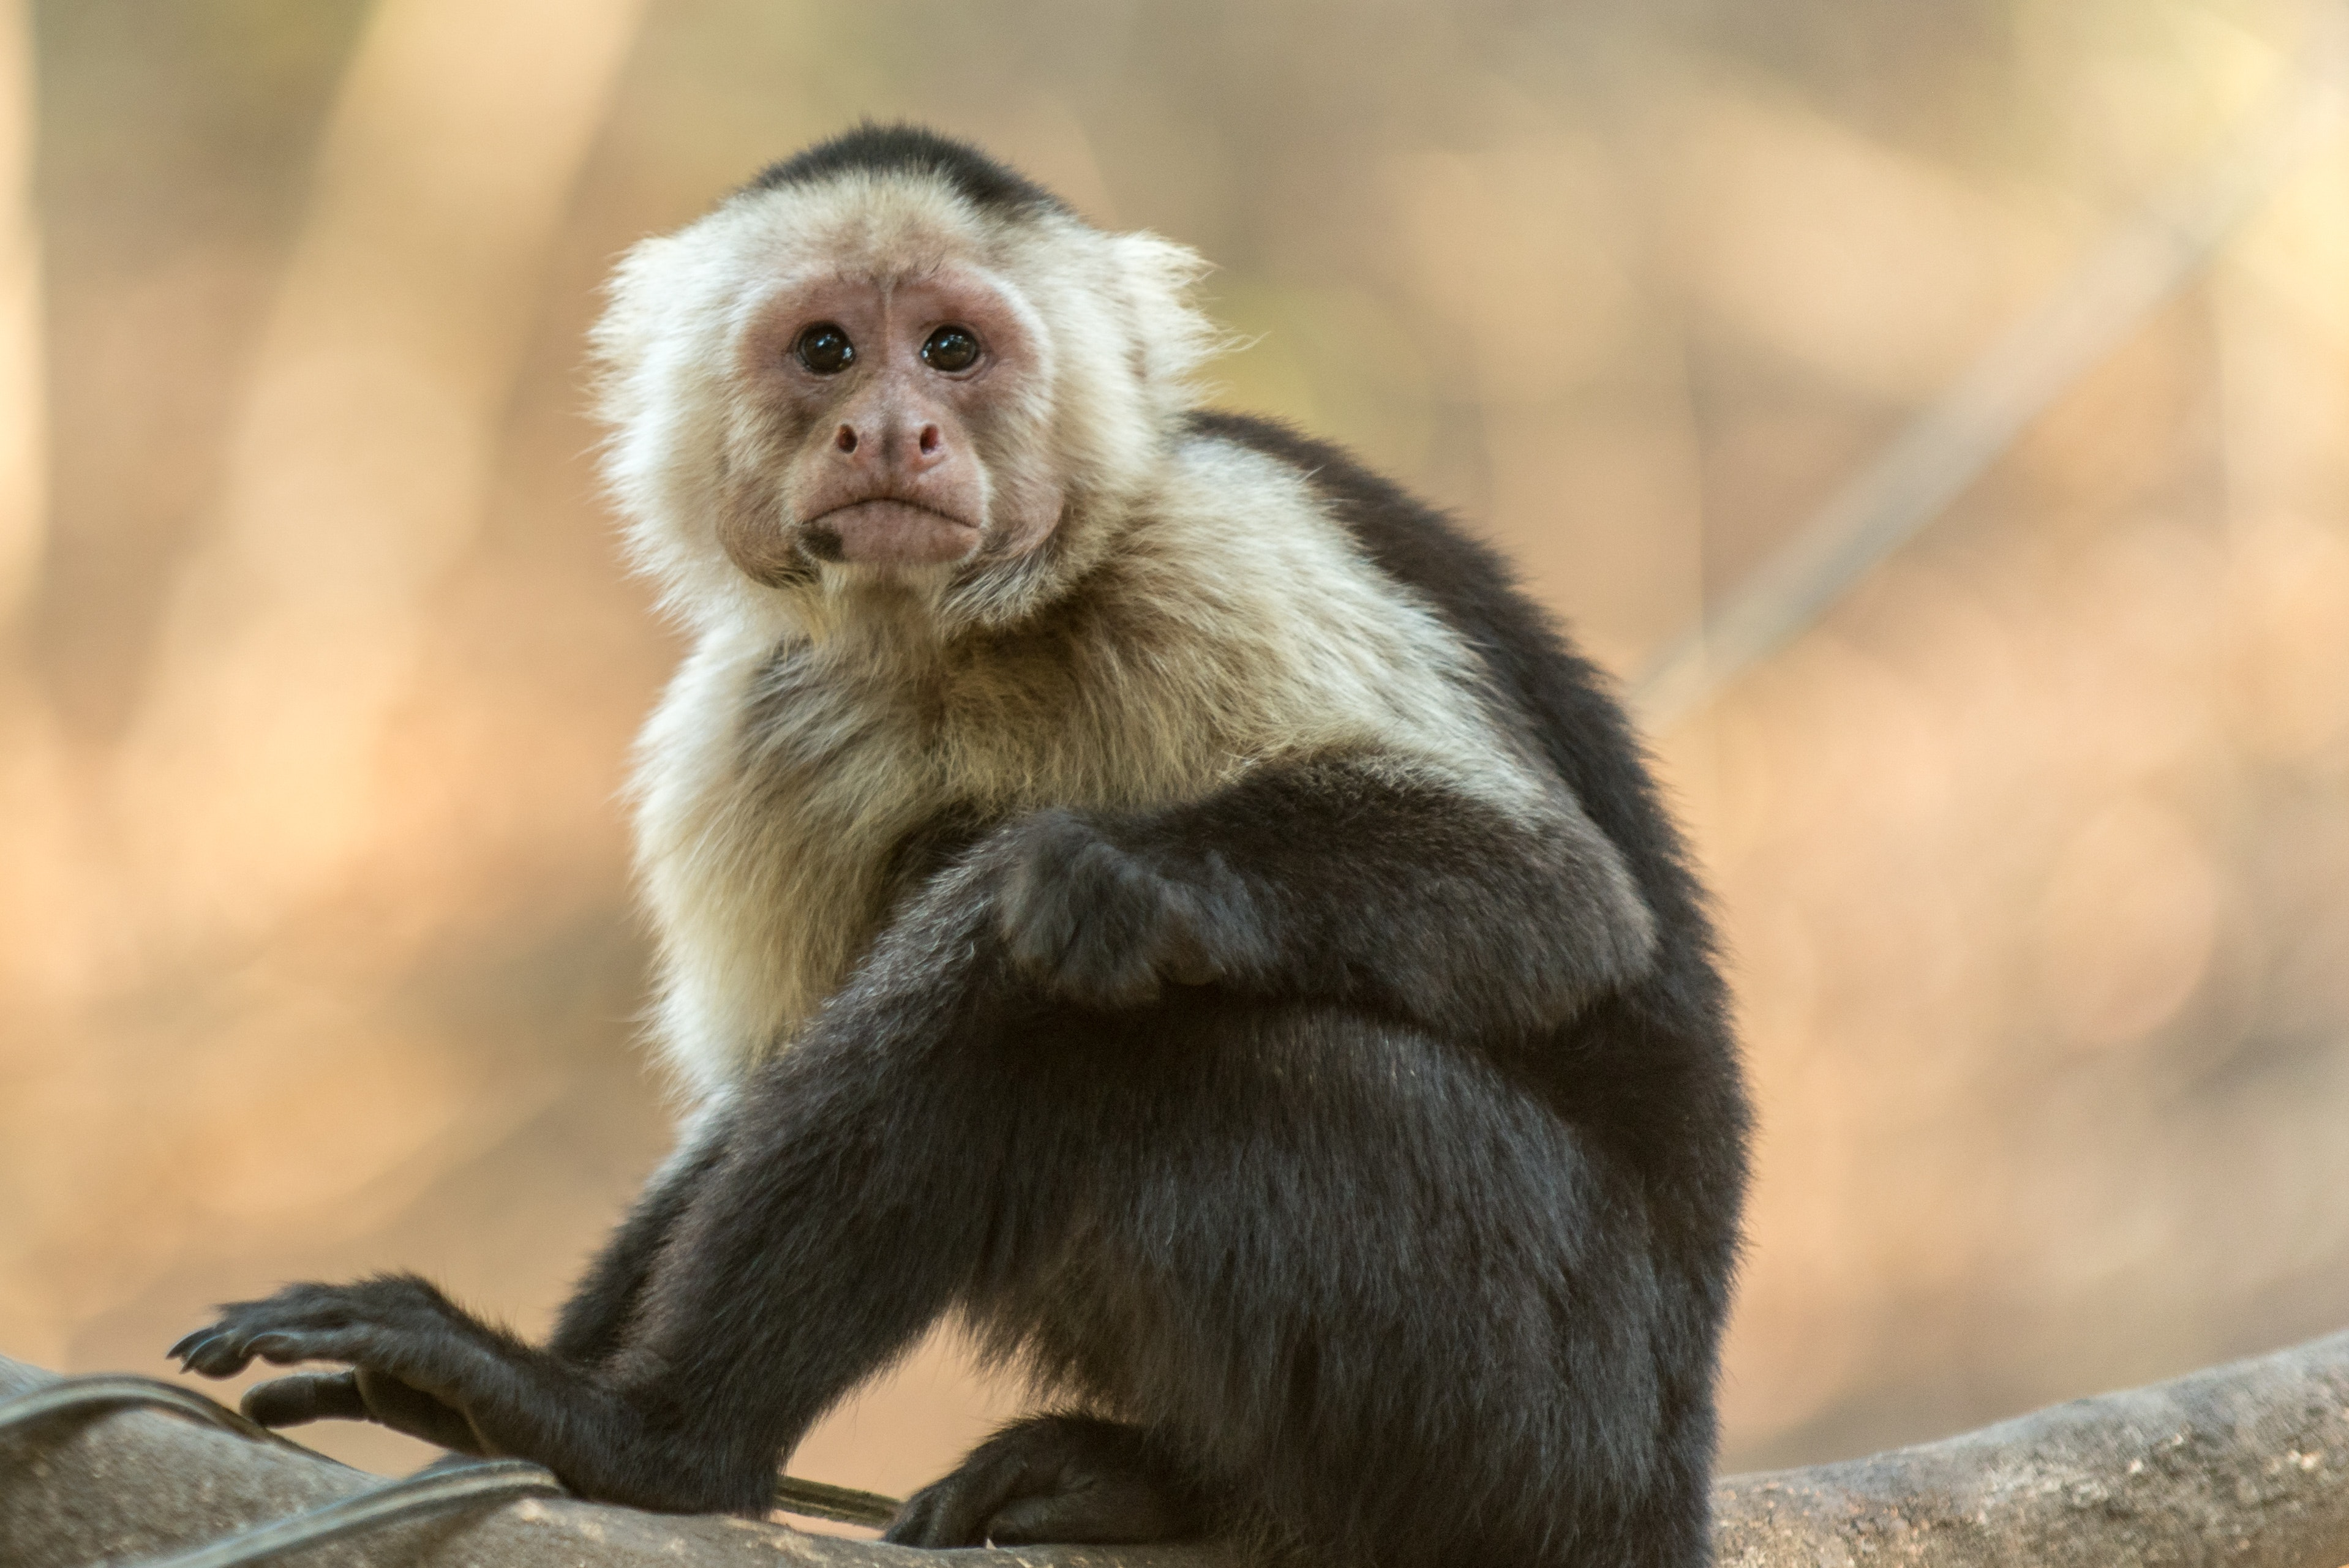 Photography of gray and black monkey